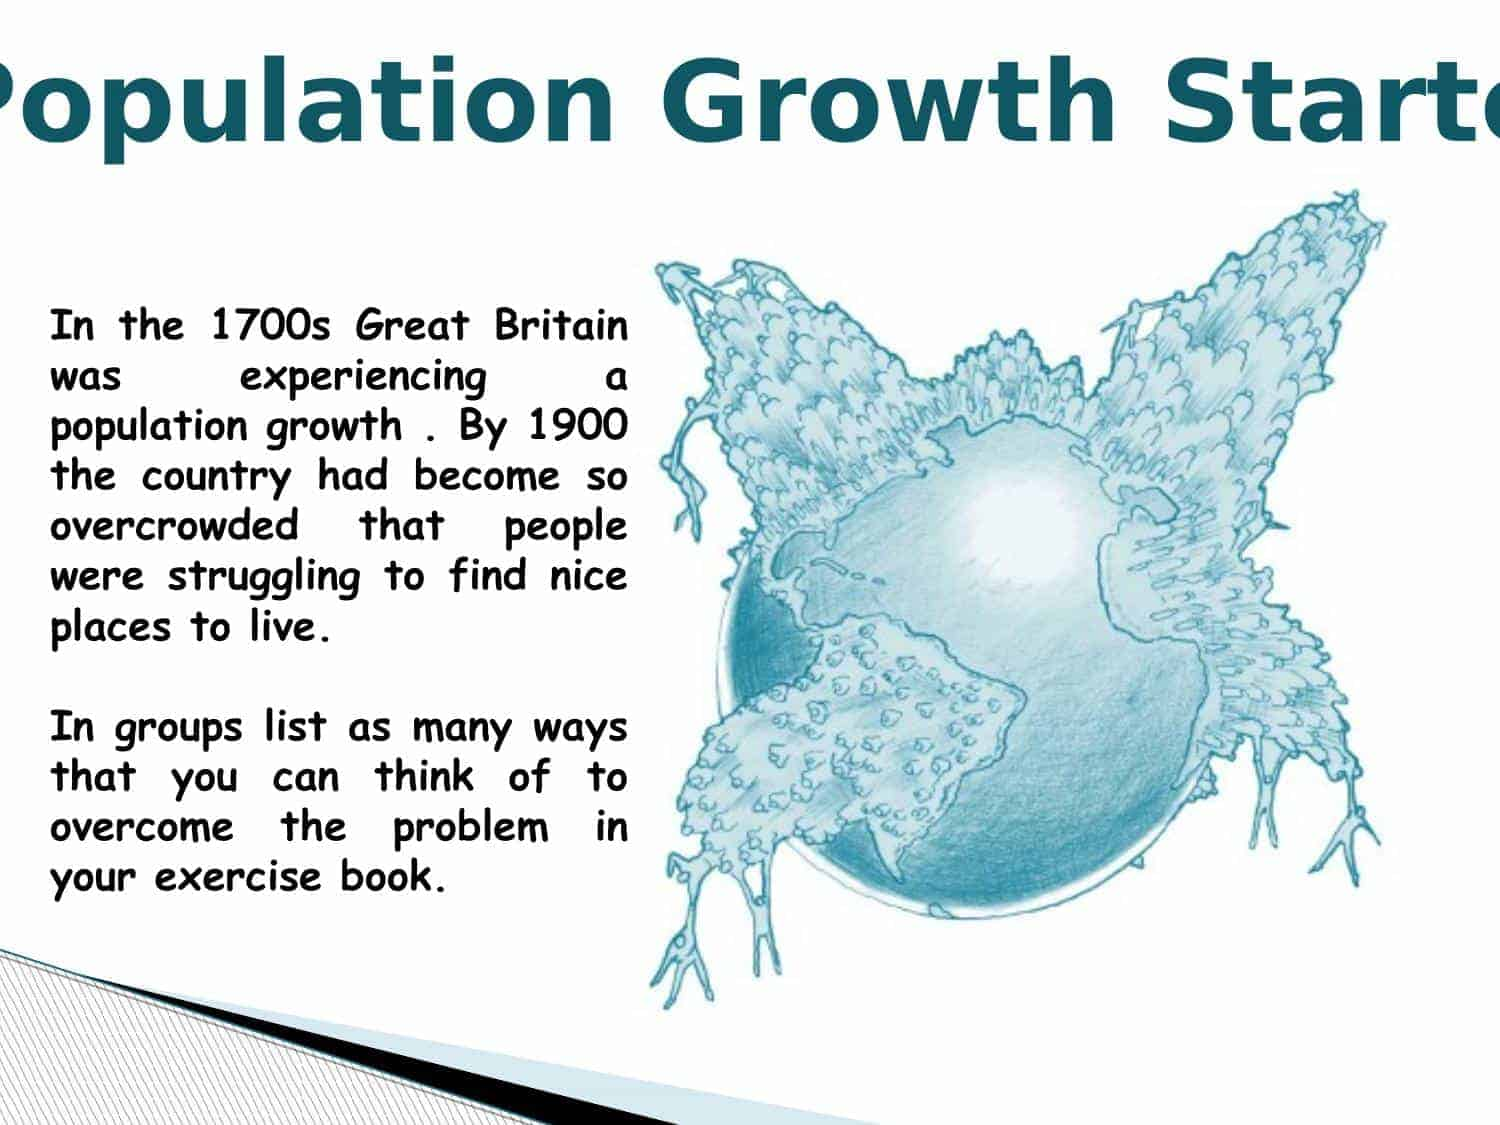 Industrial Revolution Population Growth Starter Powerpoint